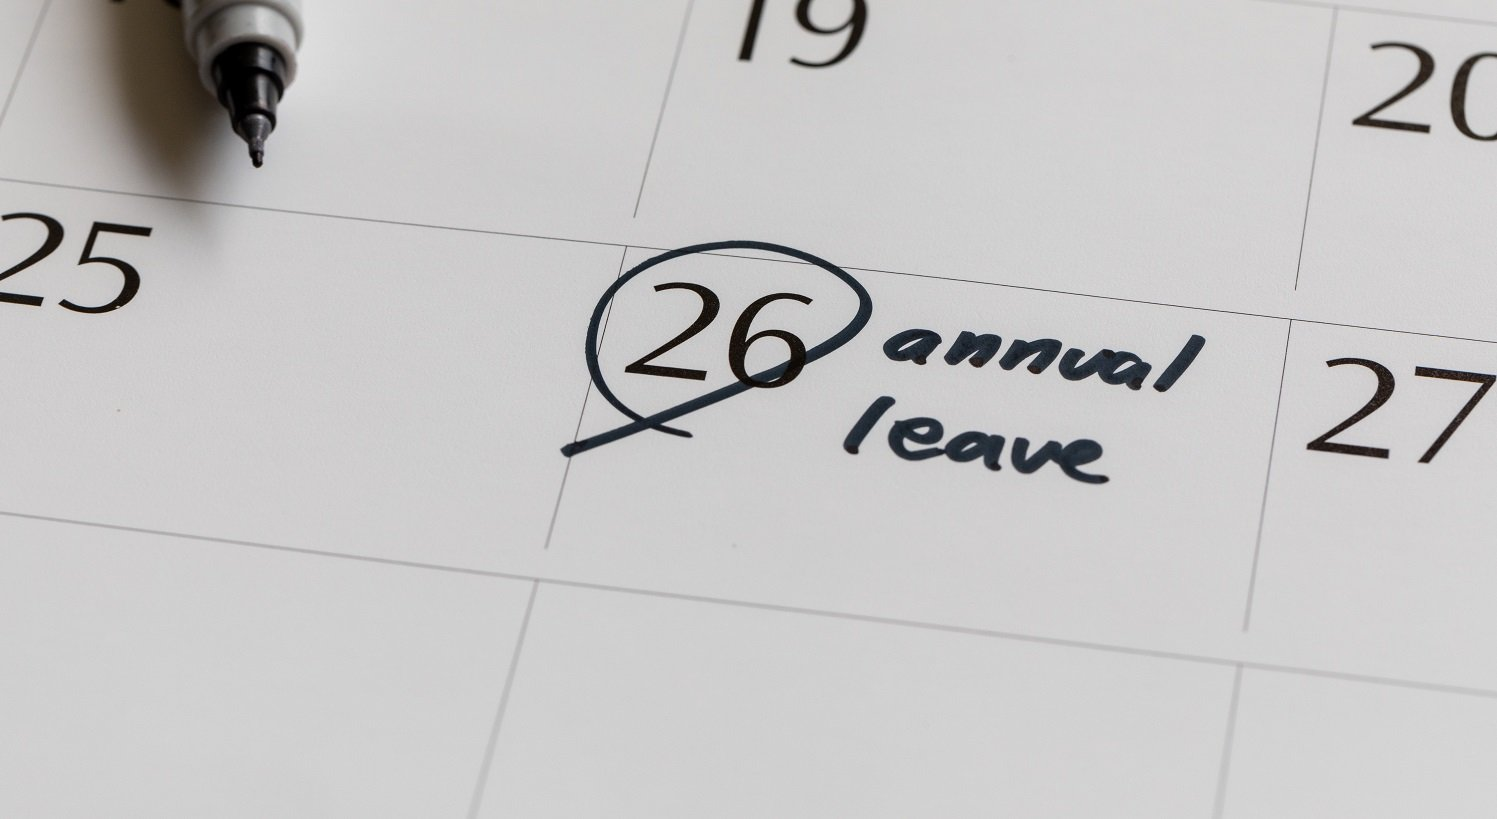 Managing annual leave during lockdown